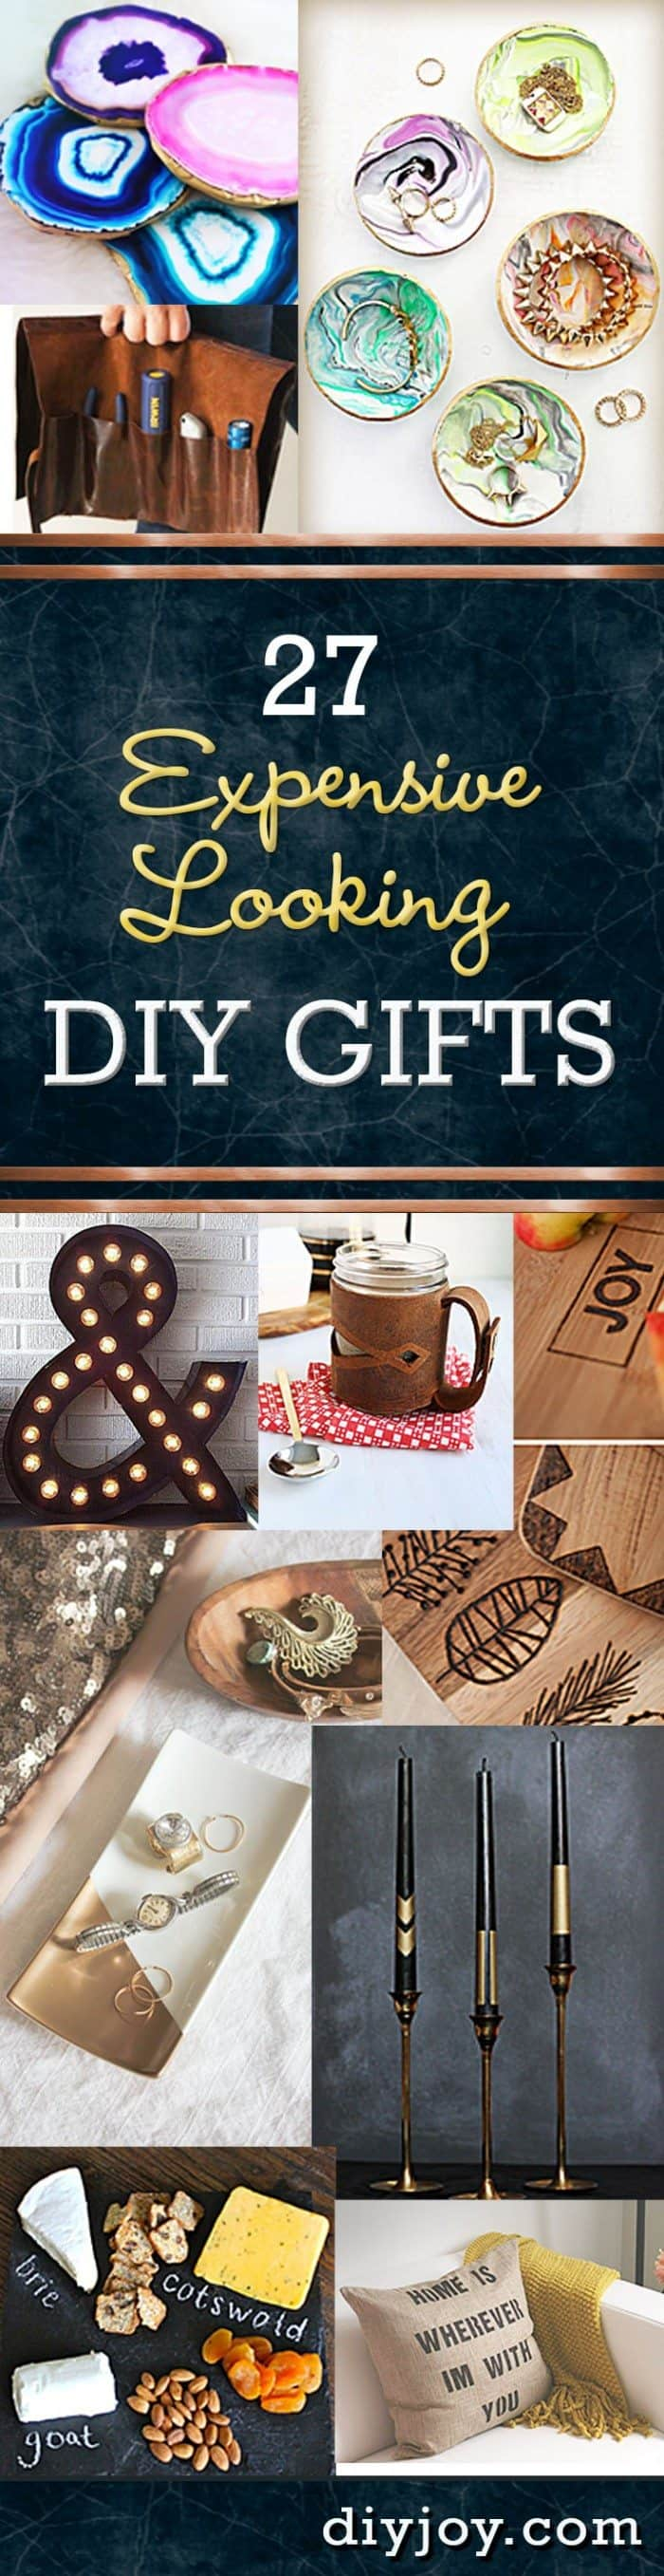 expensive-diy-gifts